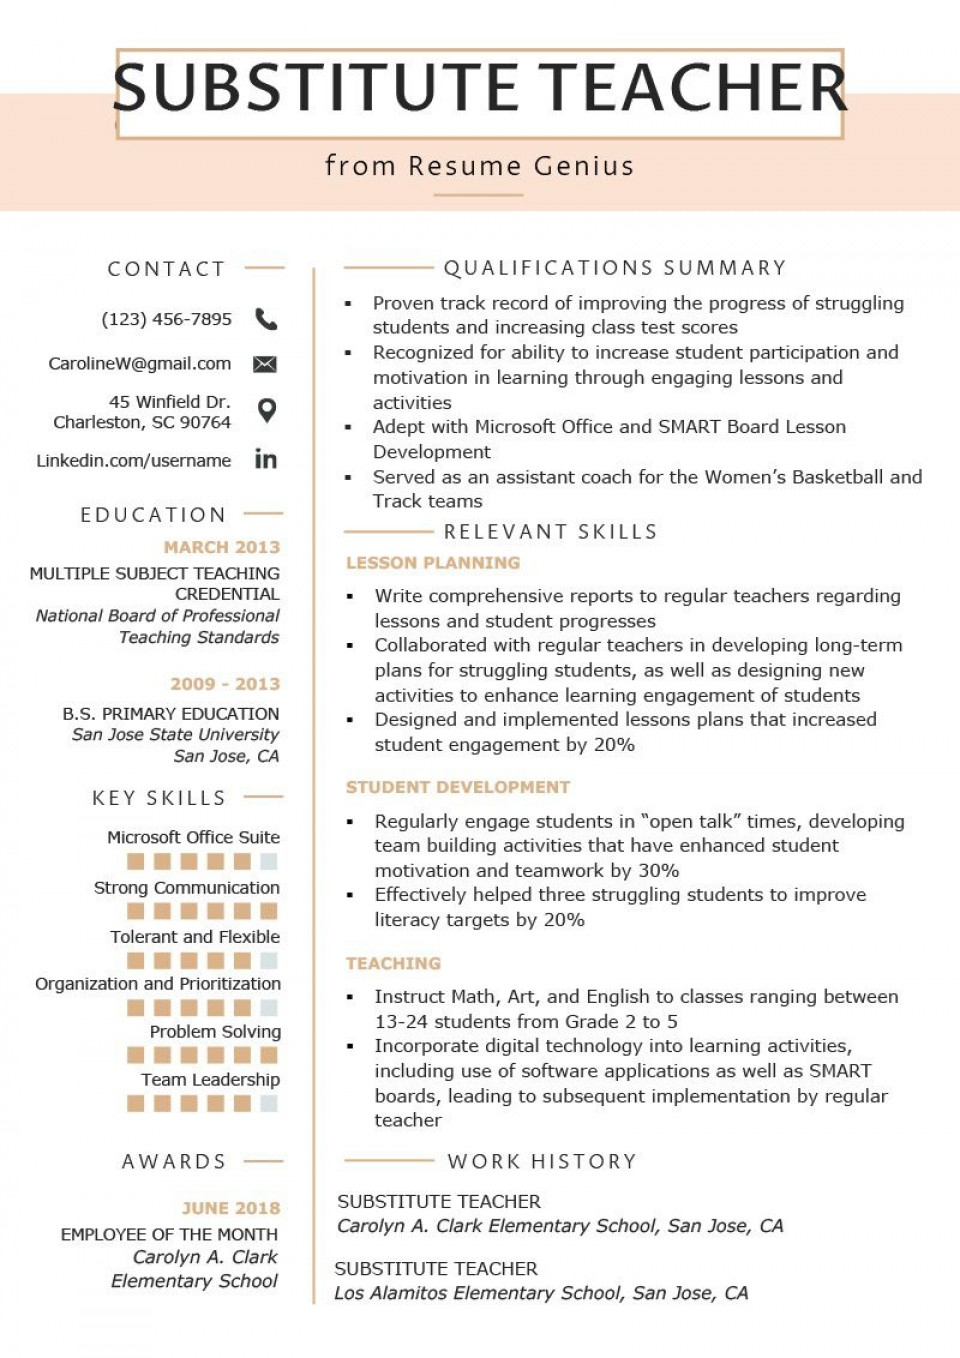 002 Stunning Resume Template For Teaching High Def  Example Assistant Cv Uk Job960